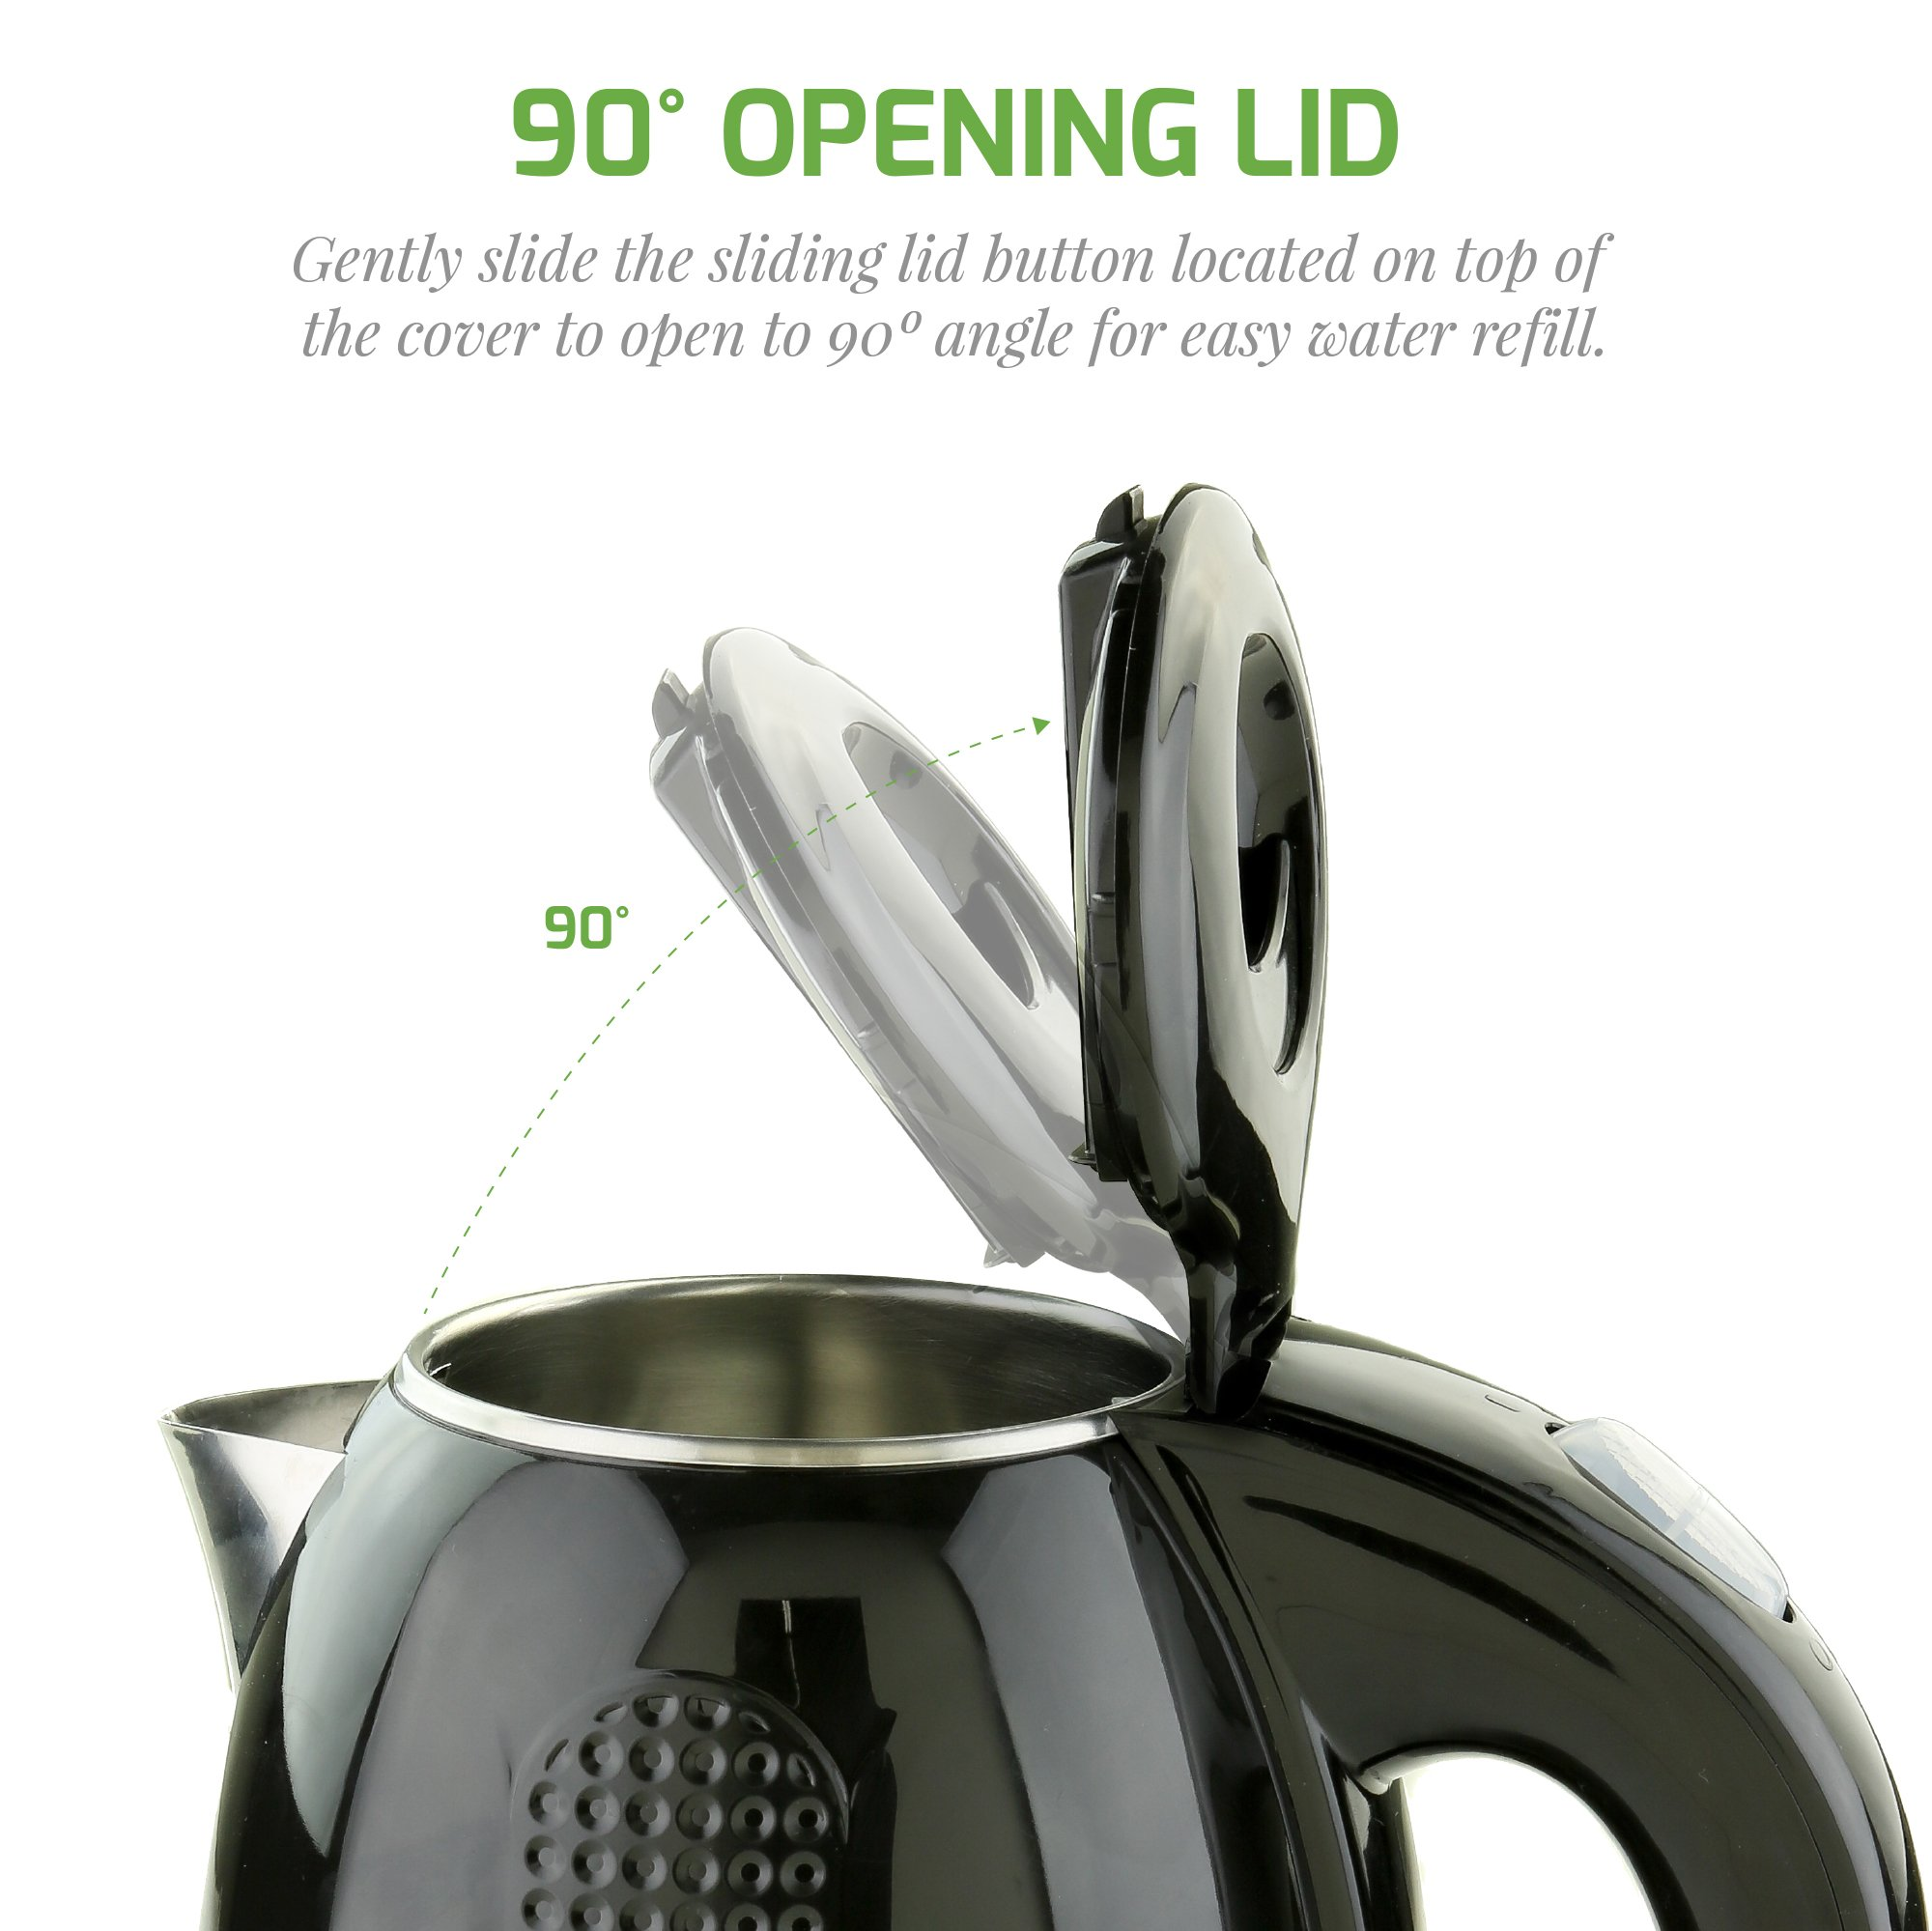 Ovente 1.7L Electric Kettle, Double Wall 304 Stainless Steel Water Boiler, Auto Shut-Off and Boil-Dry Protection, Stay-Cool Exterior, BPA-Free, Cordless, Black (KD640B) by Ovente Kitchen (Image #4)